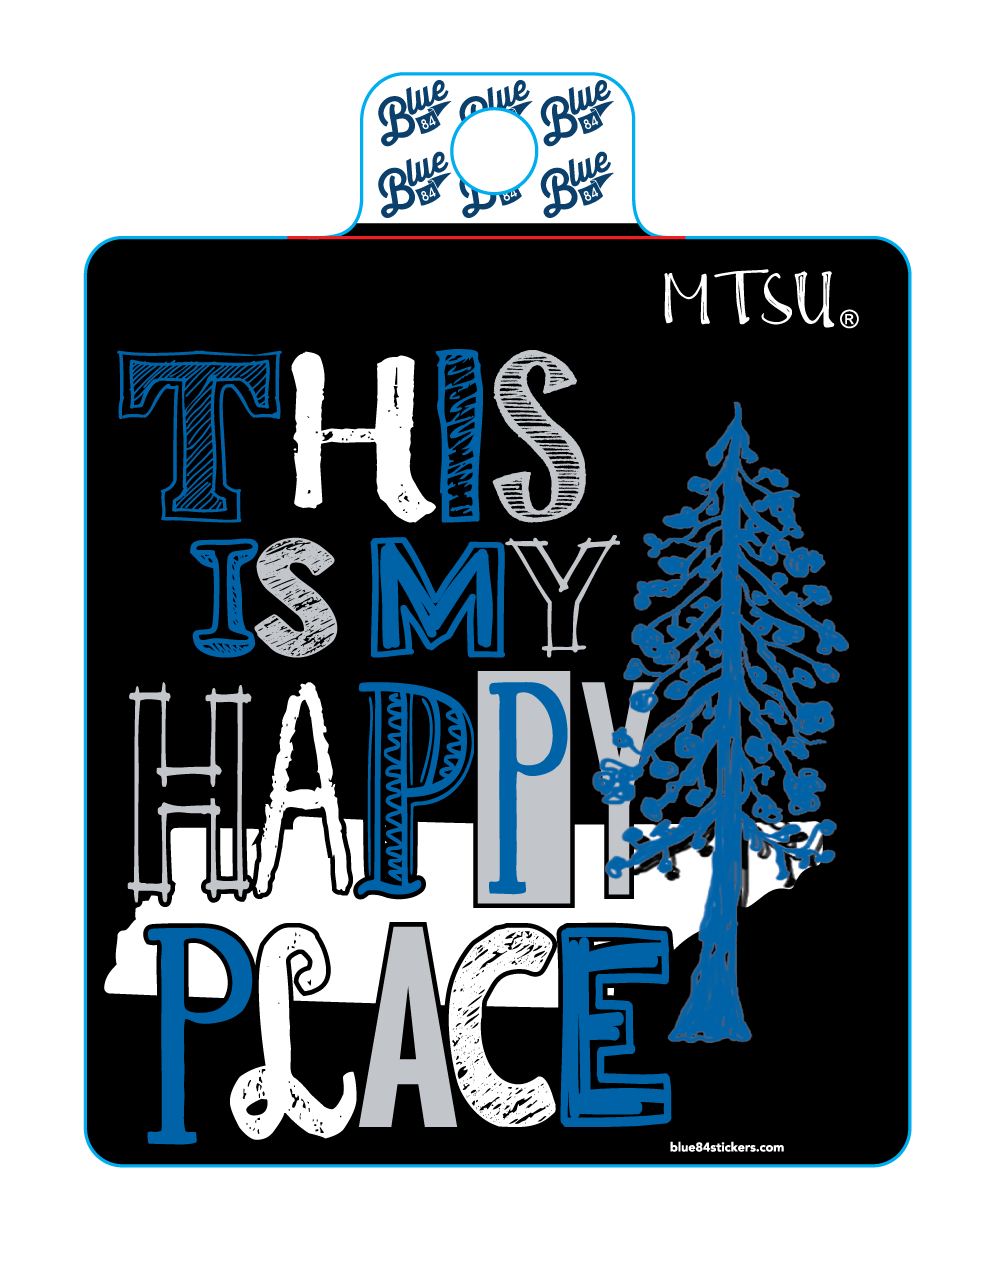 This Is My Happy Place MTSU Sticker